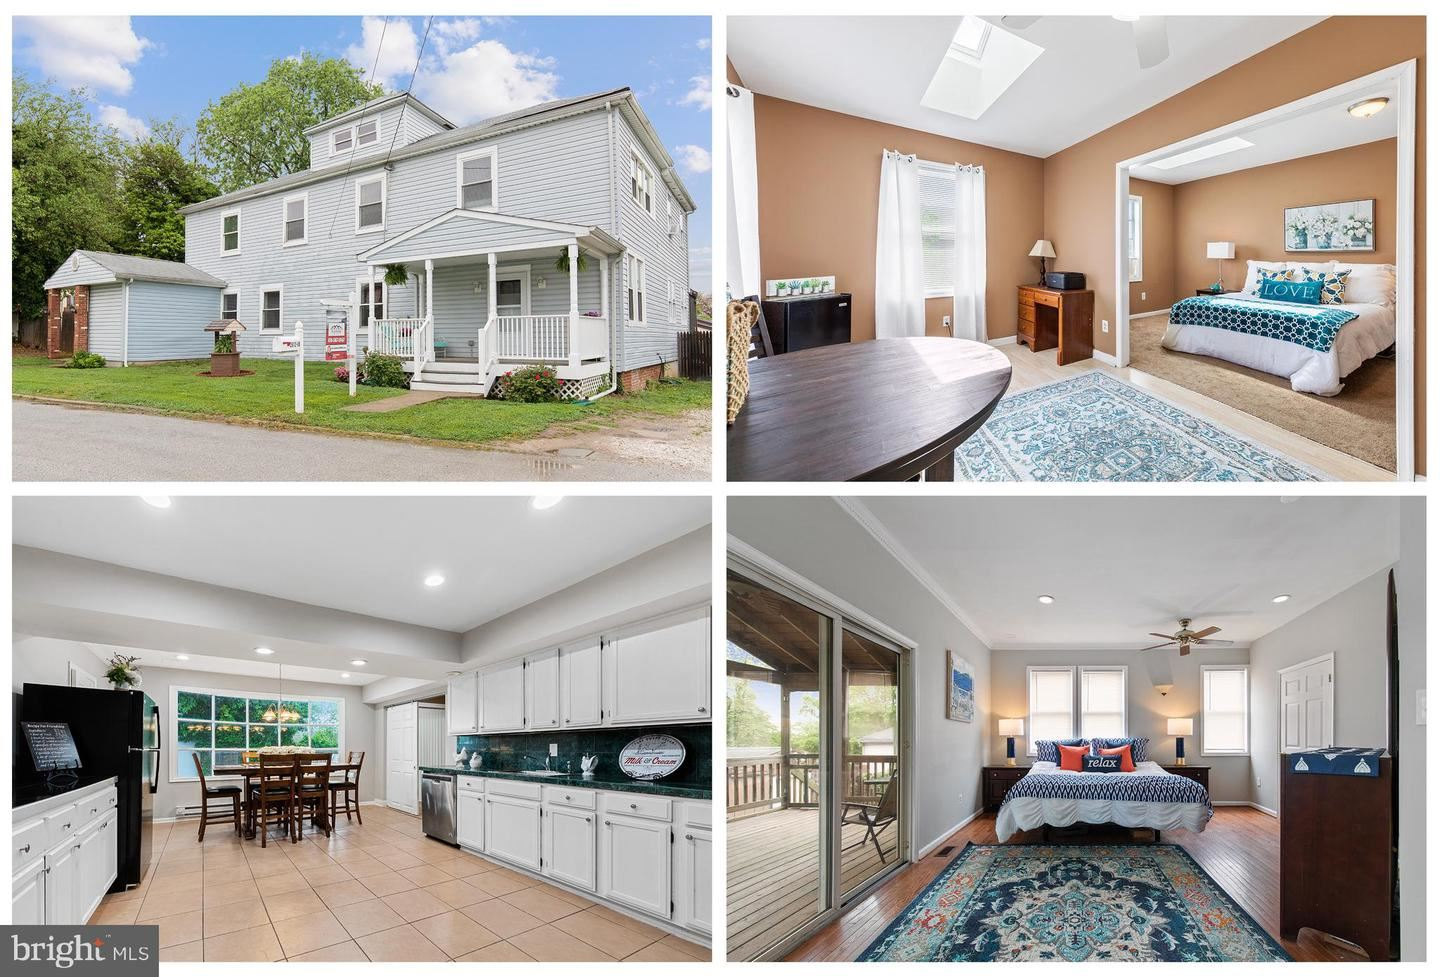 2812 OAK GROVE AVE, Halethorpe, MD 21227 - MLS#: MDBC526726